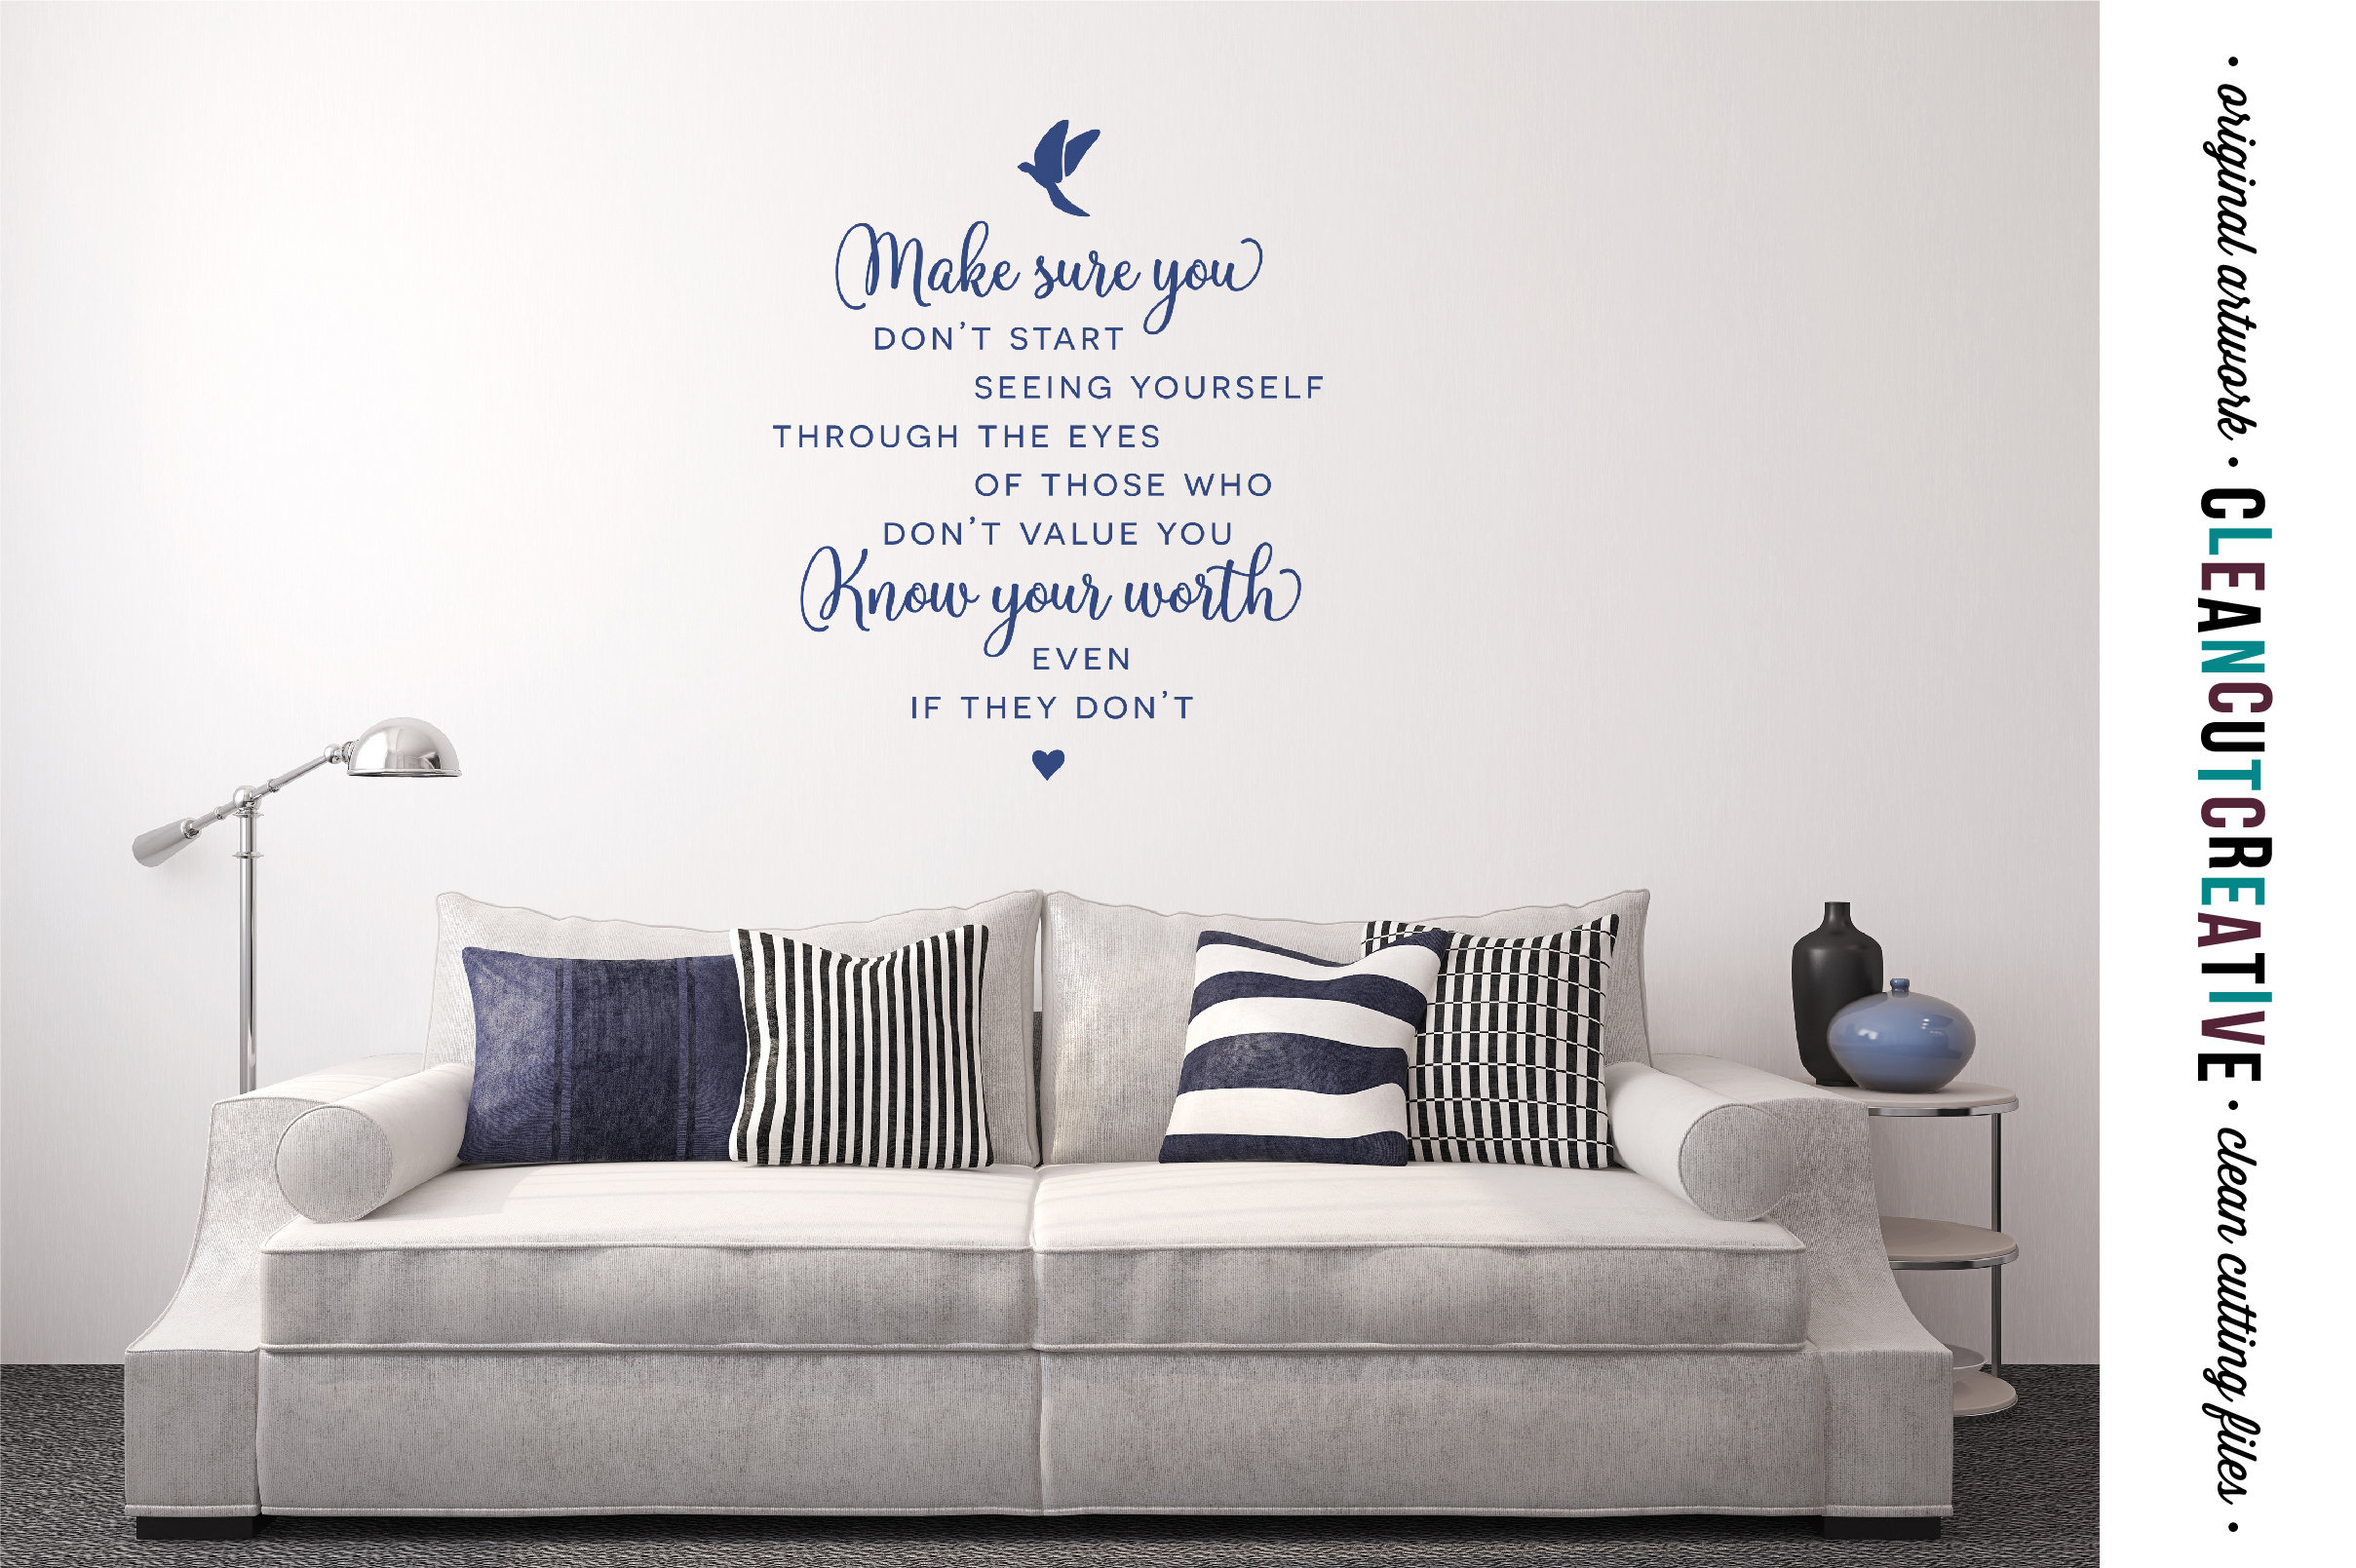 Make sure you KOW YOUR WORTH - Inspiring Quote - SVG DXF EPS PNG - Cricut & Silhouette - clean cutting files example image 2